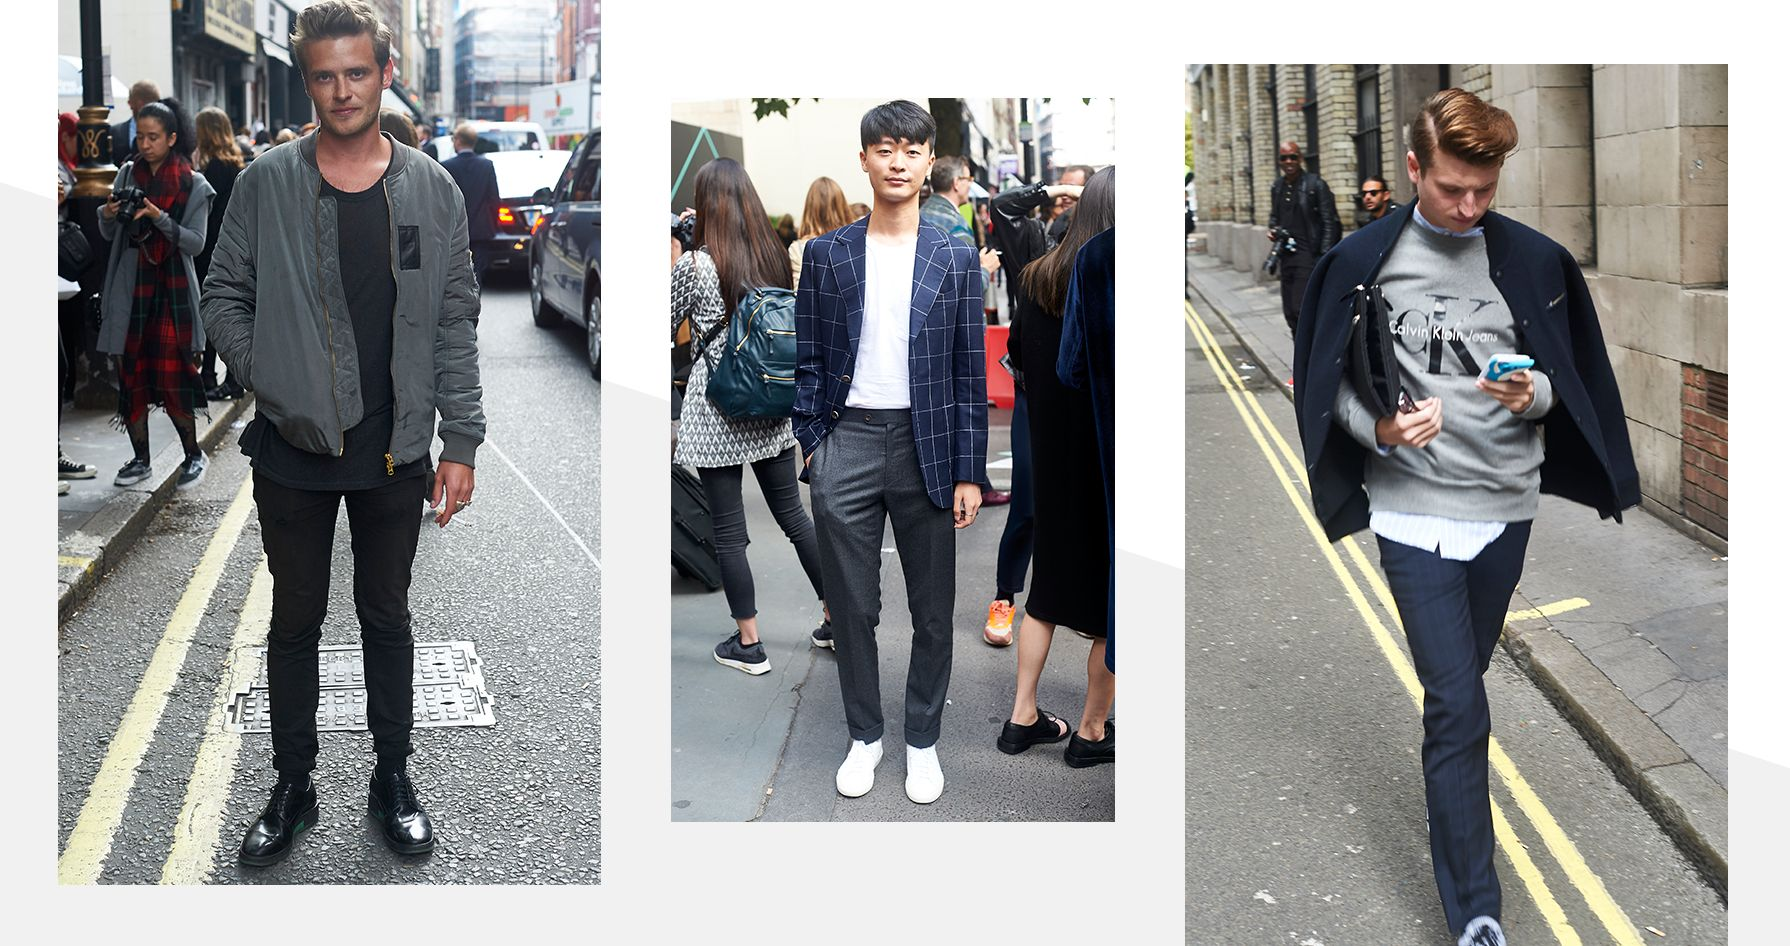 MENSWEAR STREETSTYLE AT LFW